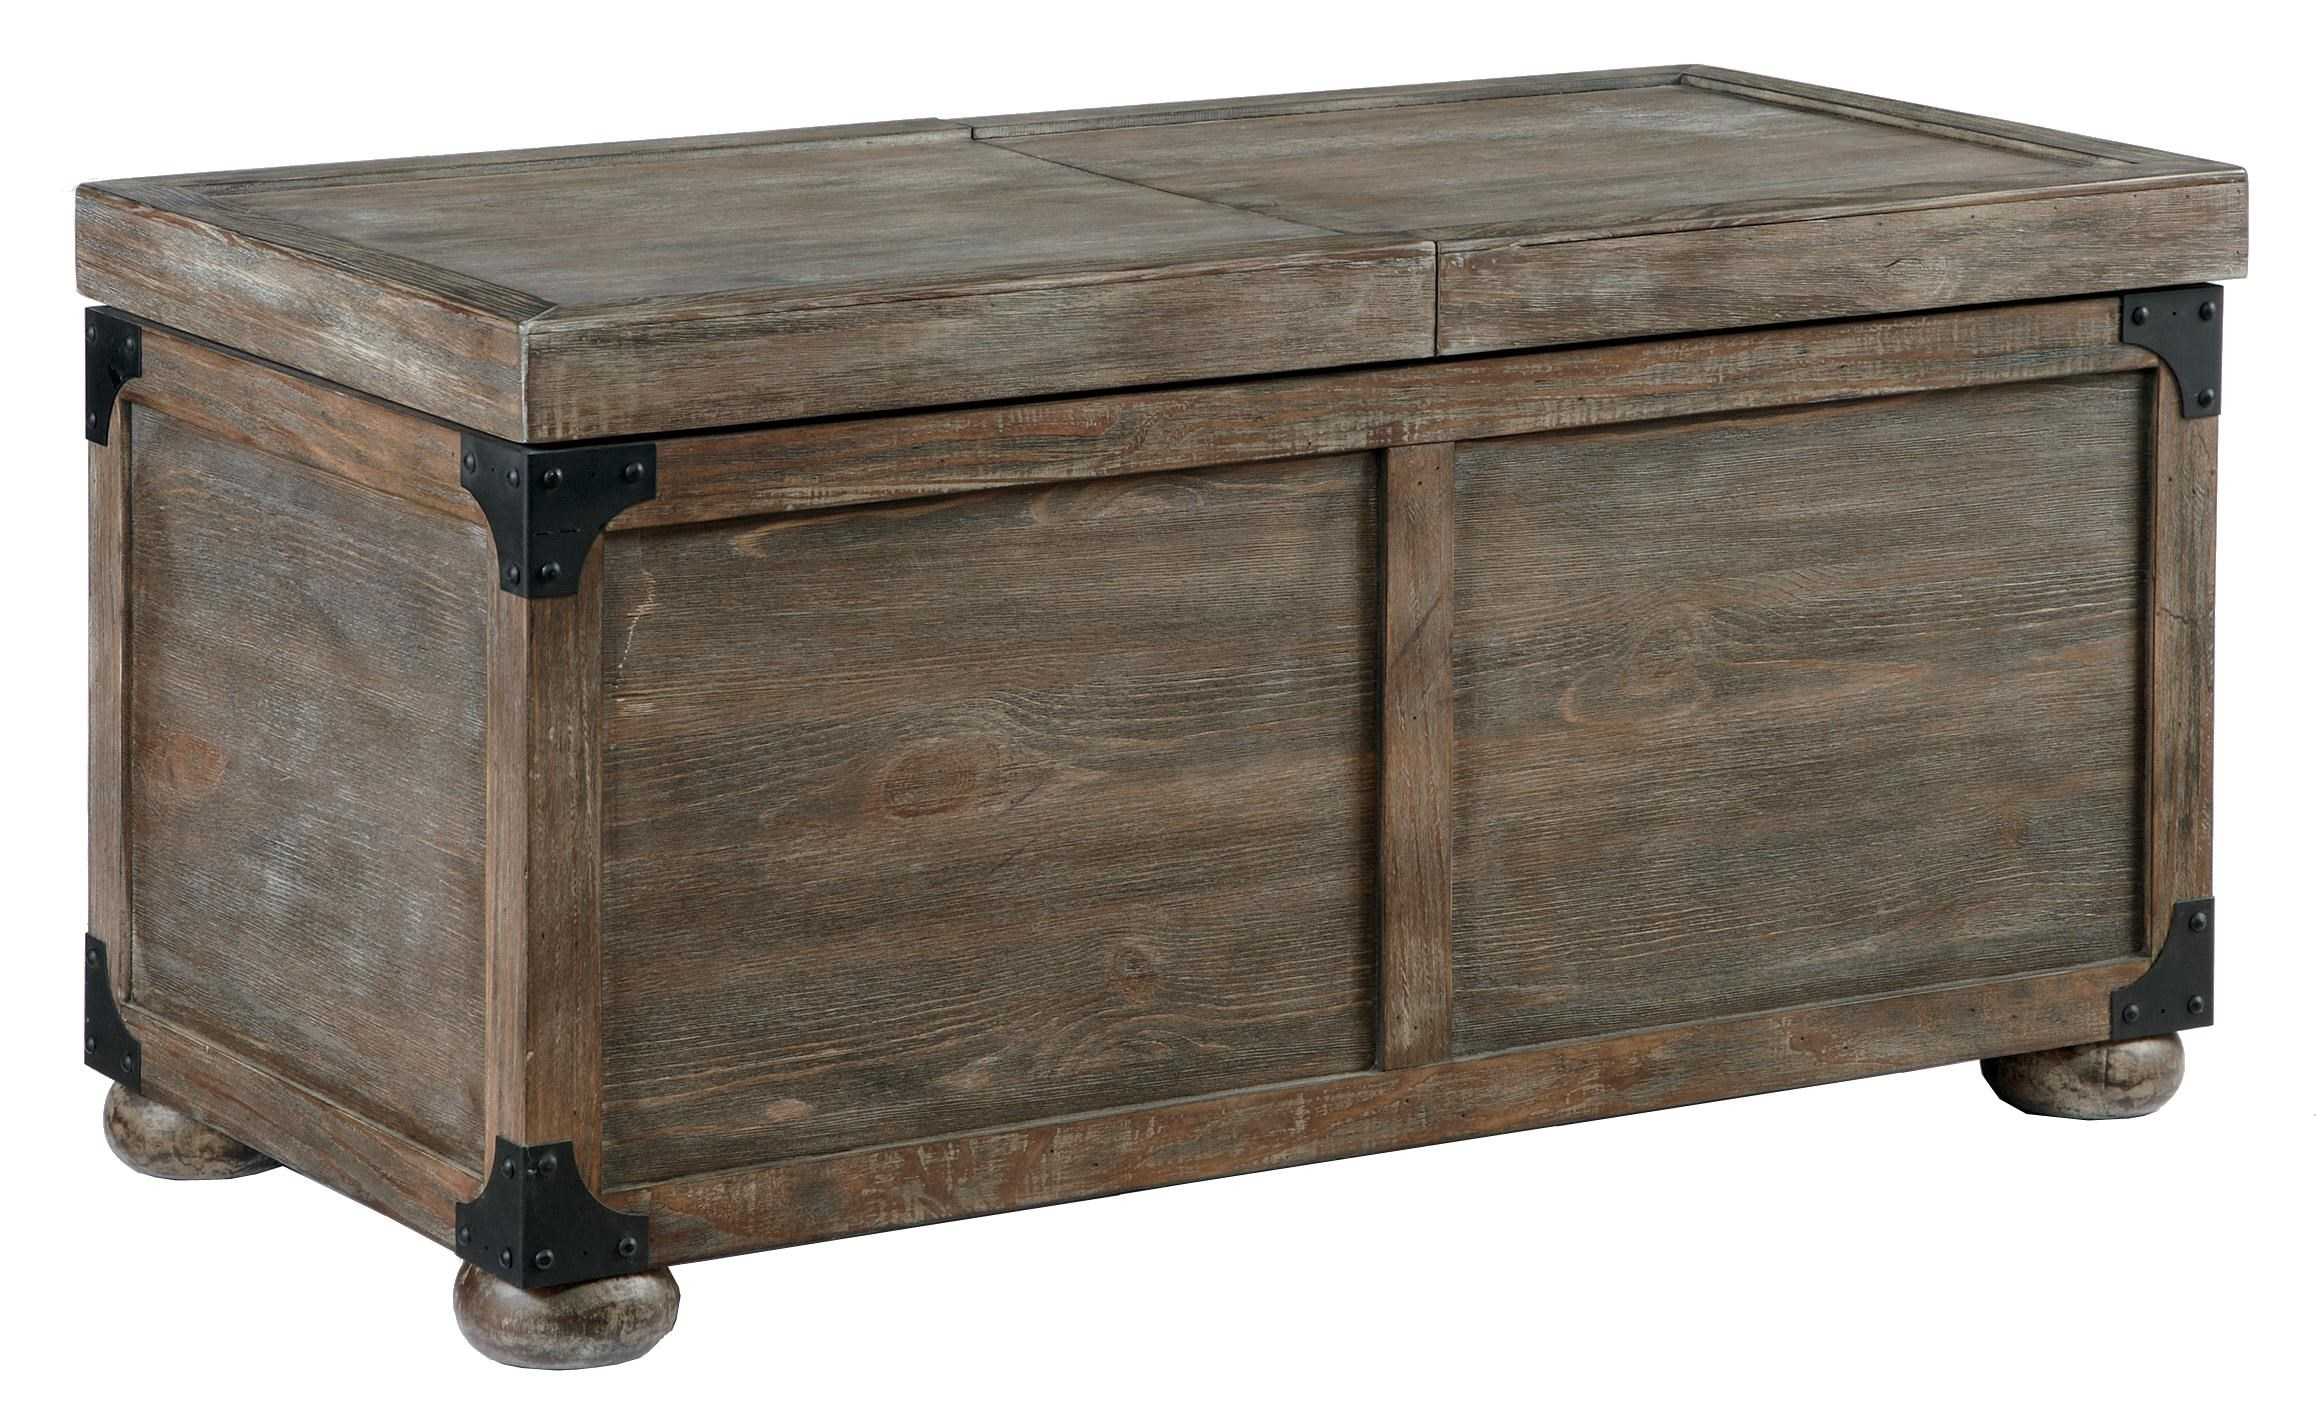 Signature Design By Ashley Vennilux Trunk Style Rustic Storage Cocktail  Table   Household Furniture   Cocktail/Coffee Tables